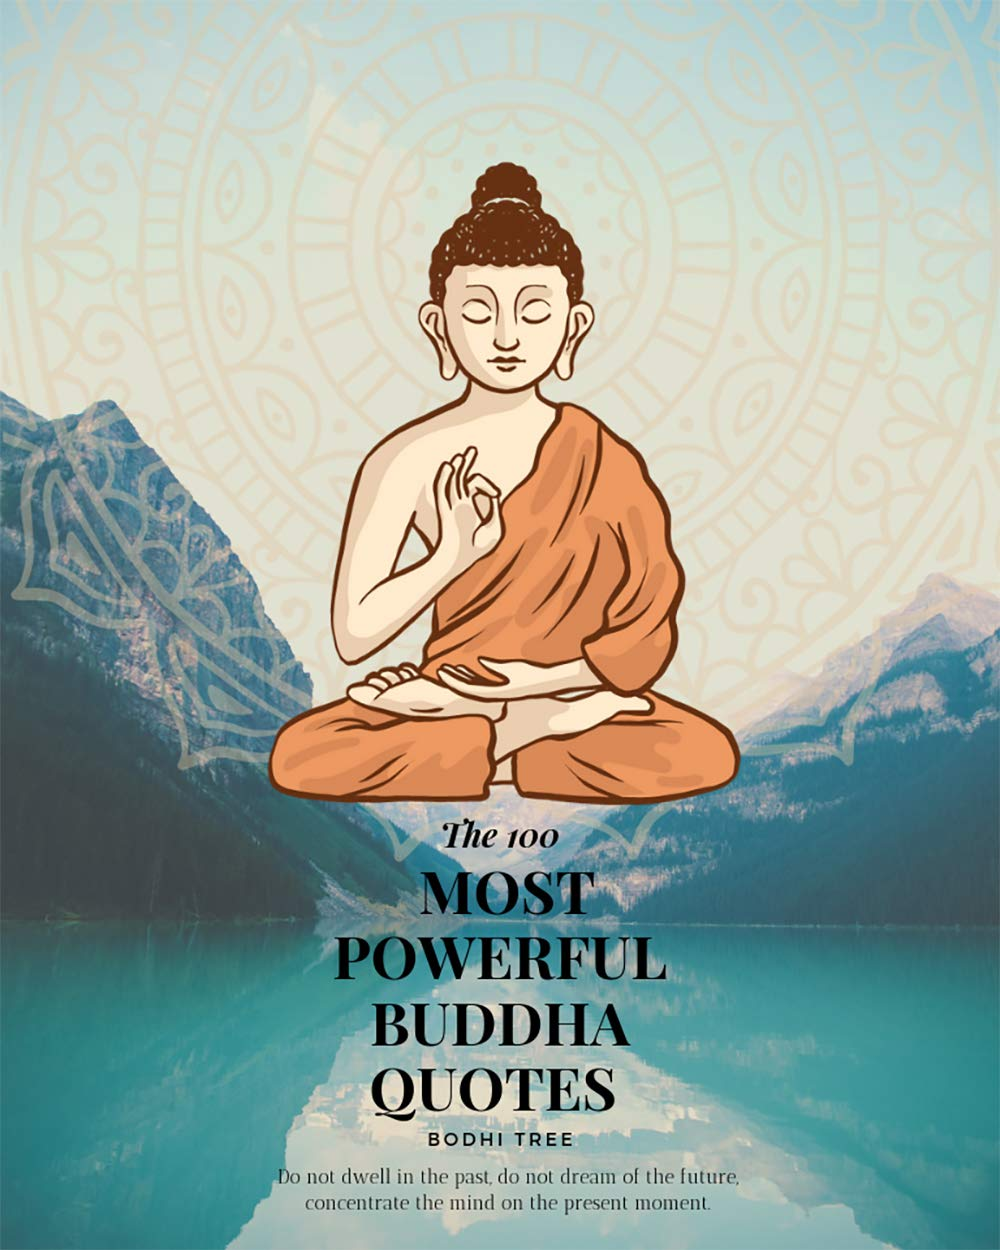 The 100 Most Powerful Buddha Quotes Do Not Dwell In The Past Do Not Dream Of The Future Concentrate The Mind On The Present Moment Ebook Tree Bodhi Amazon Com Au Kindle Store